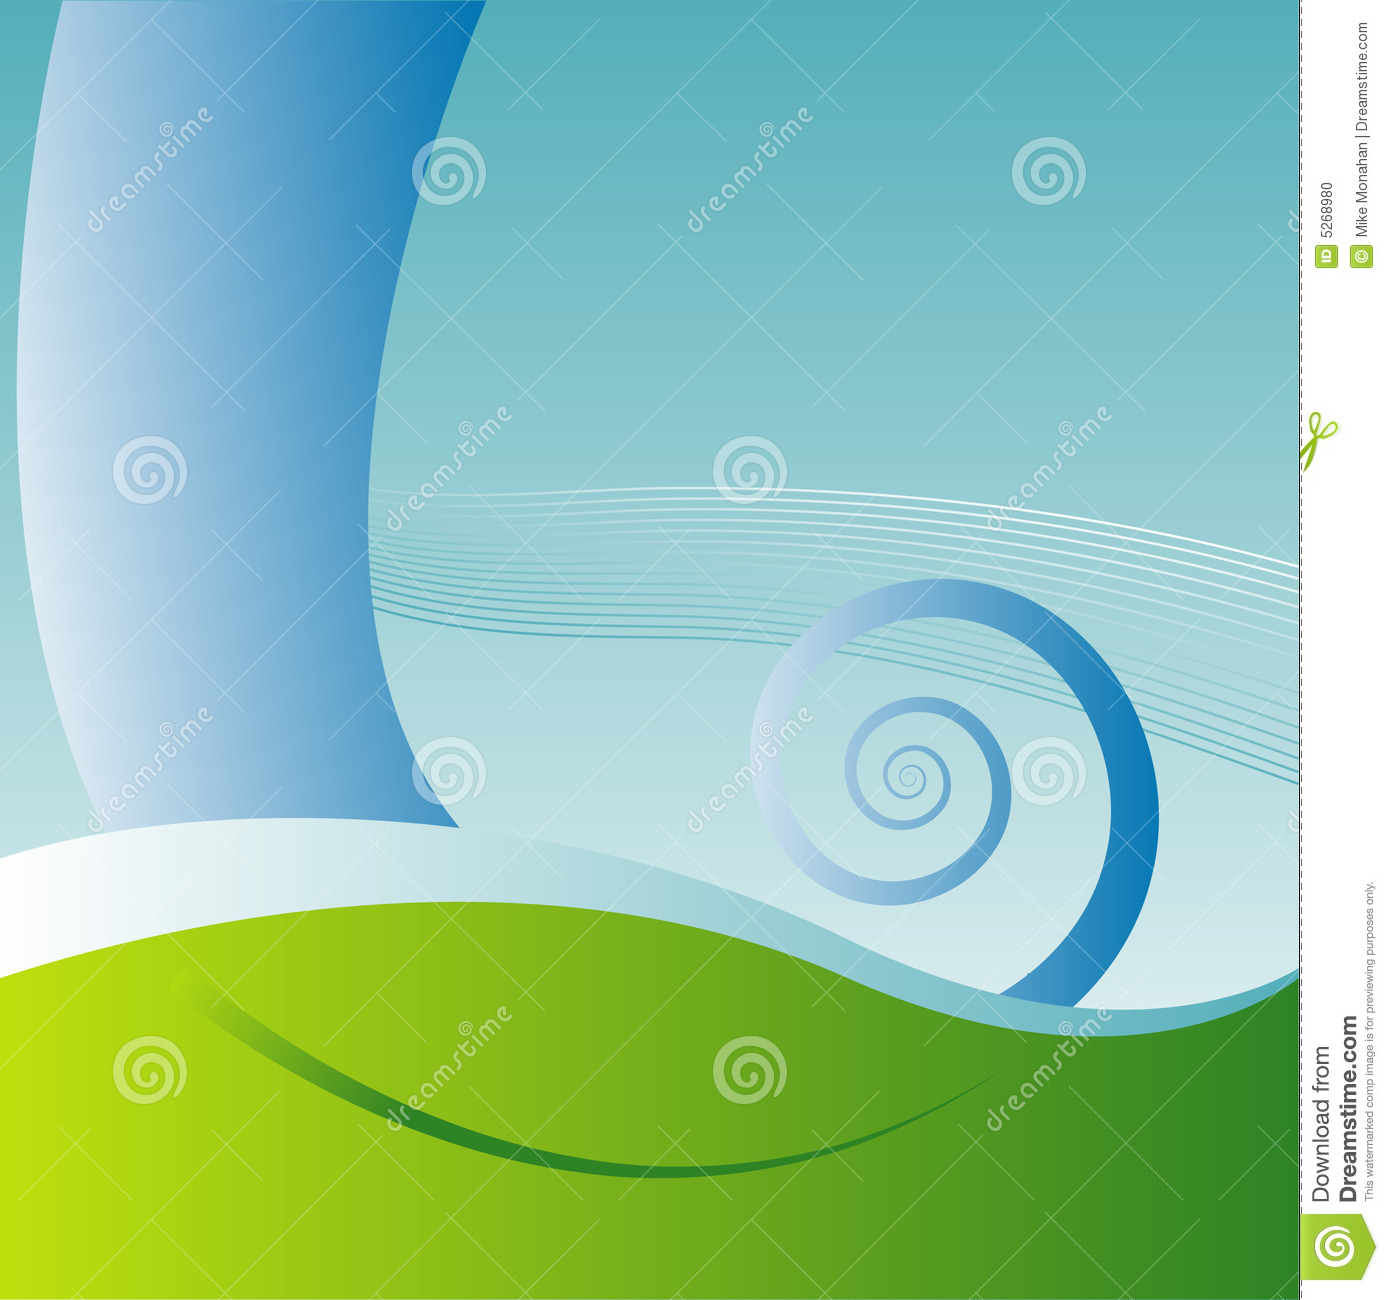 Abstract Aquatic Background Stock Photo.